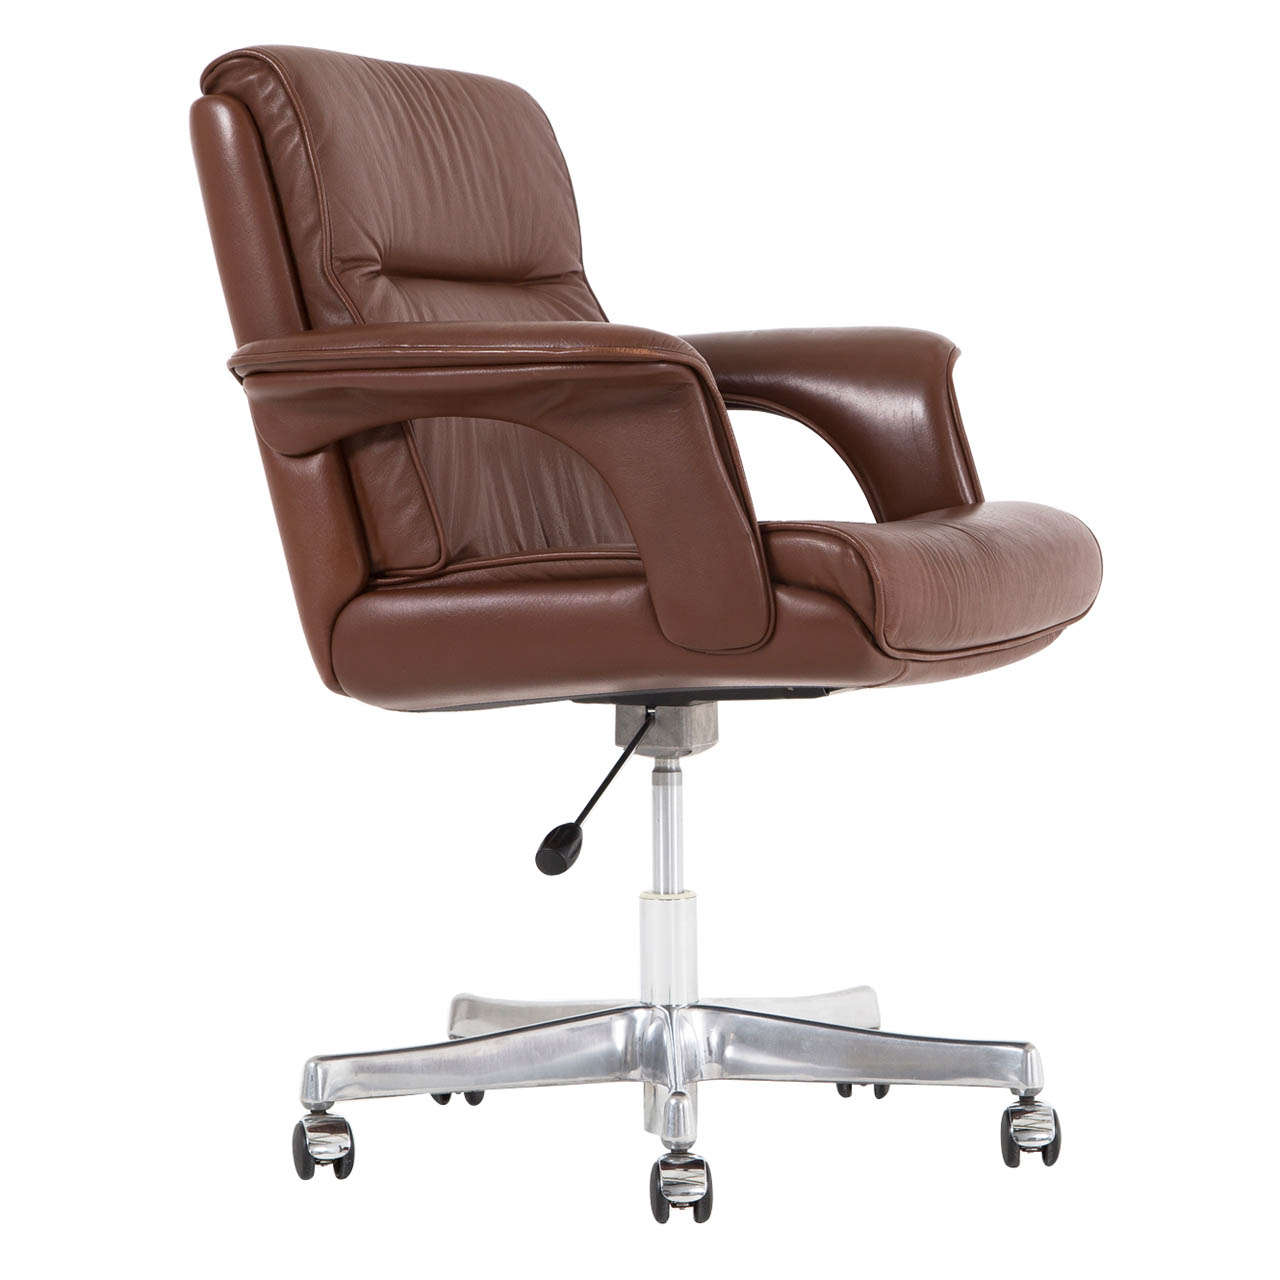 Tan leather office chair - Executive Conference Desk Office Chair In Brown Leather 1